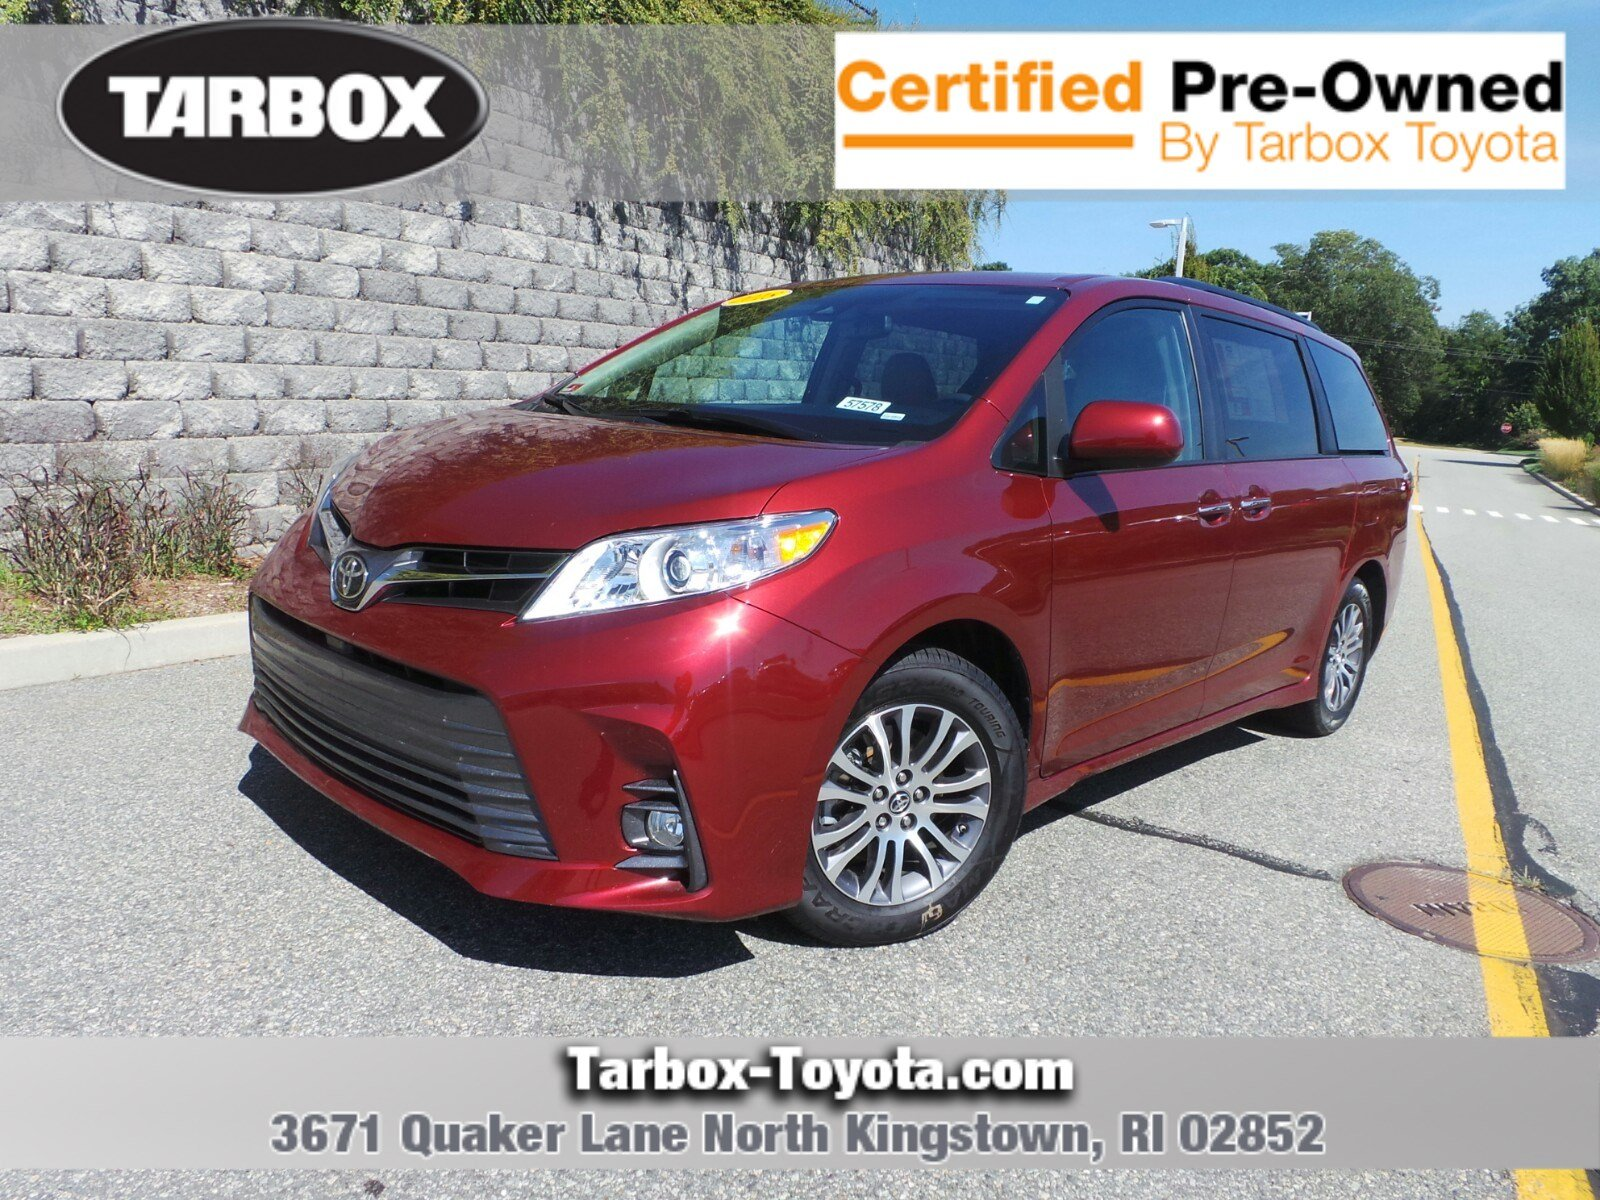 Toyota Sienna Service Manual: Engine Coolant Temperature Circuit